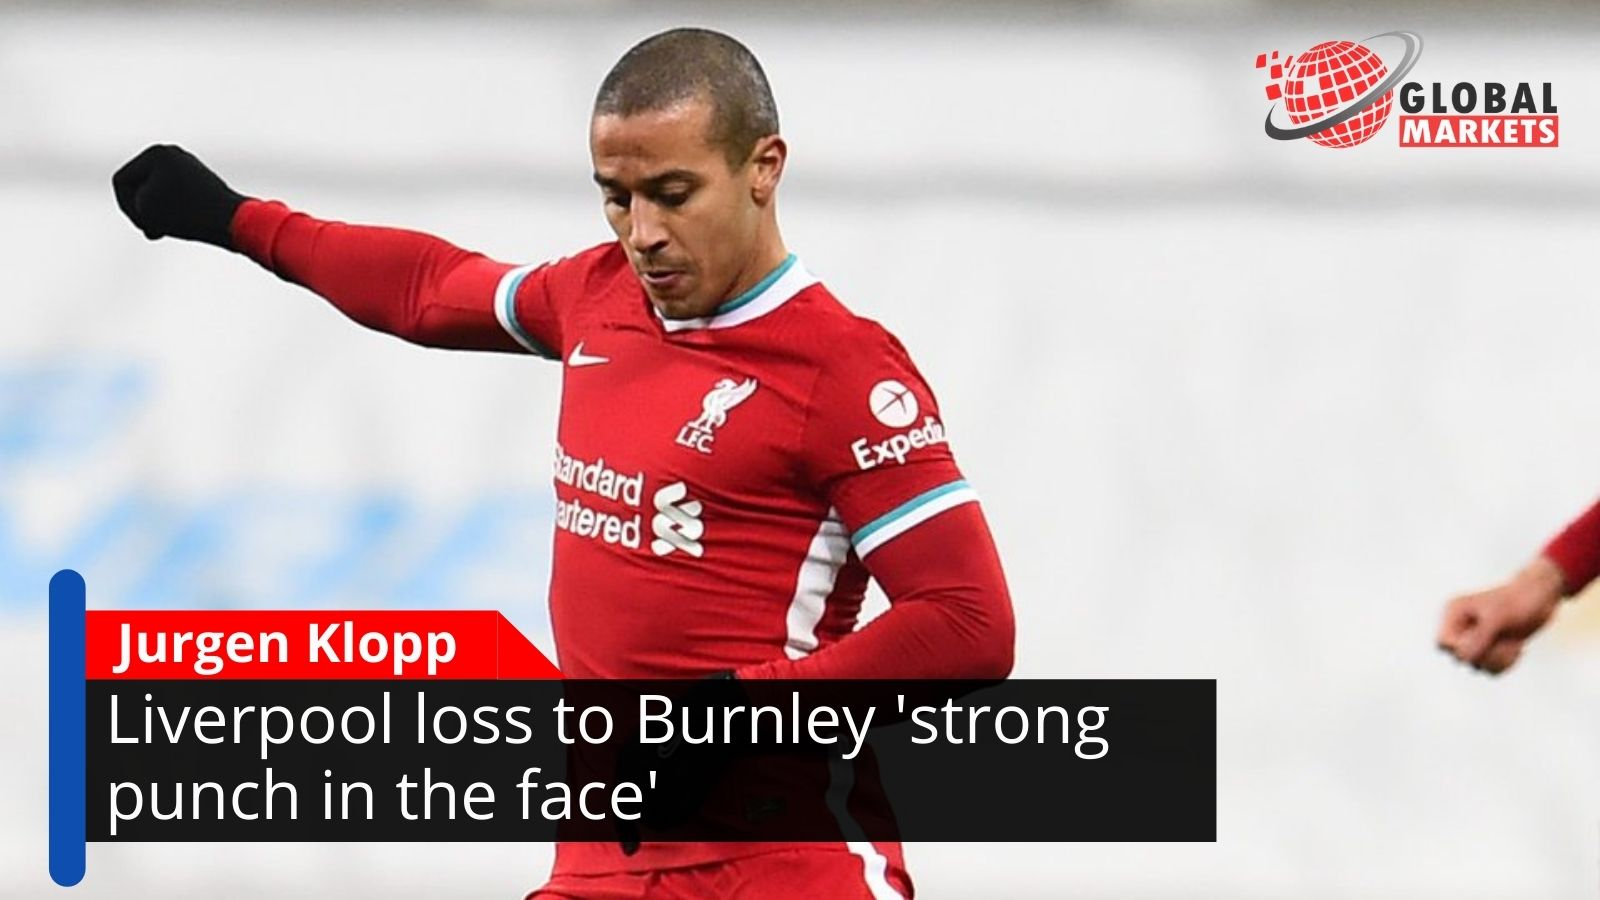 Jurgen Klopp: Liverpool loss to Burnley 'strong punch in the face'